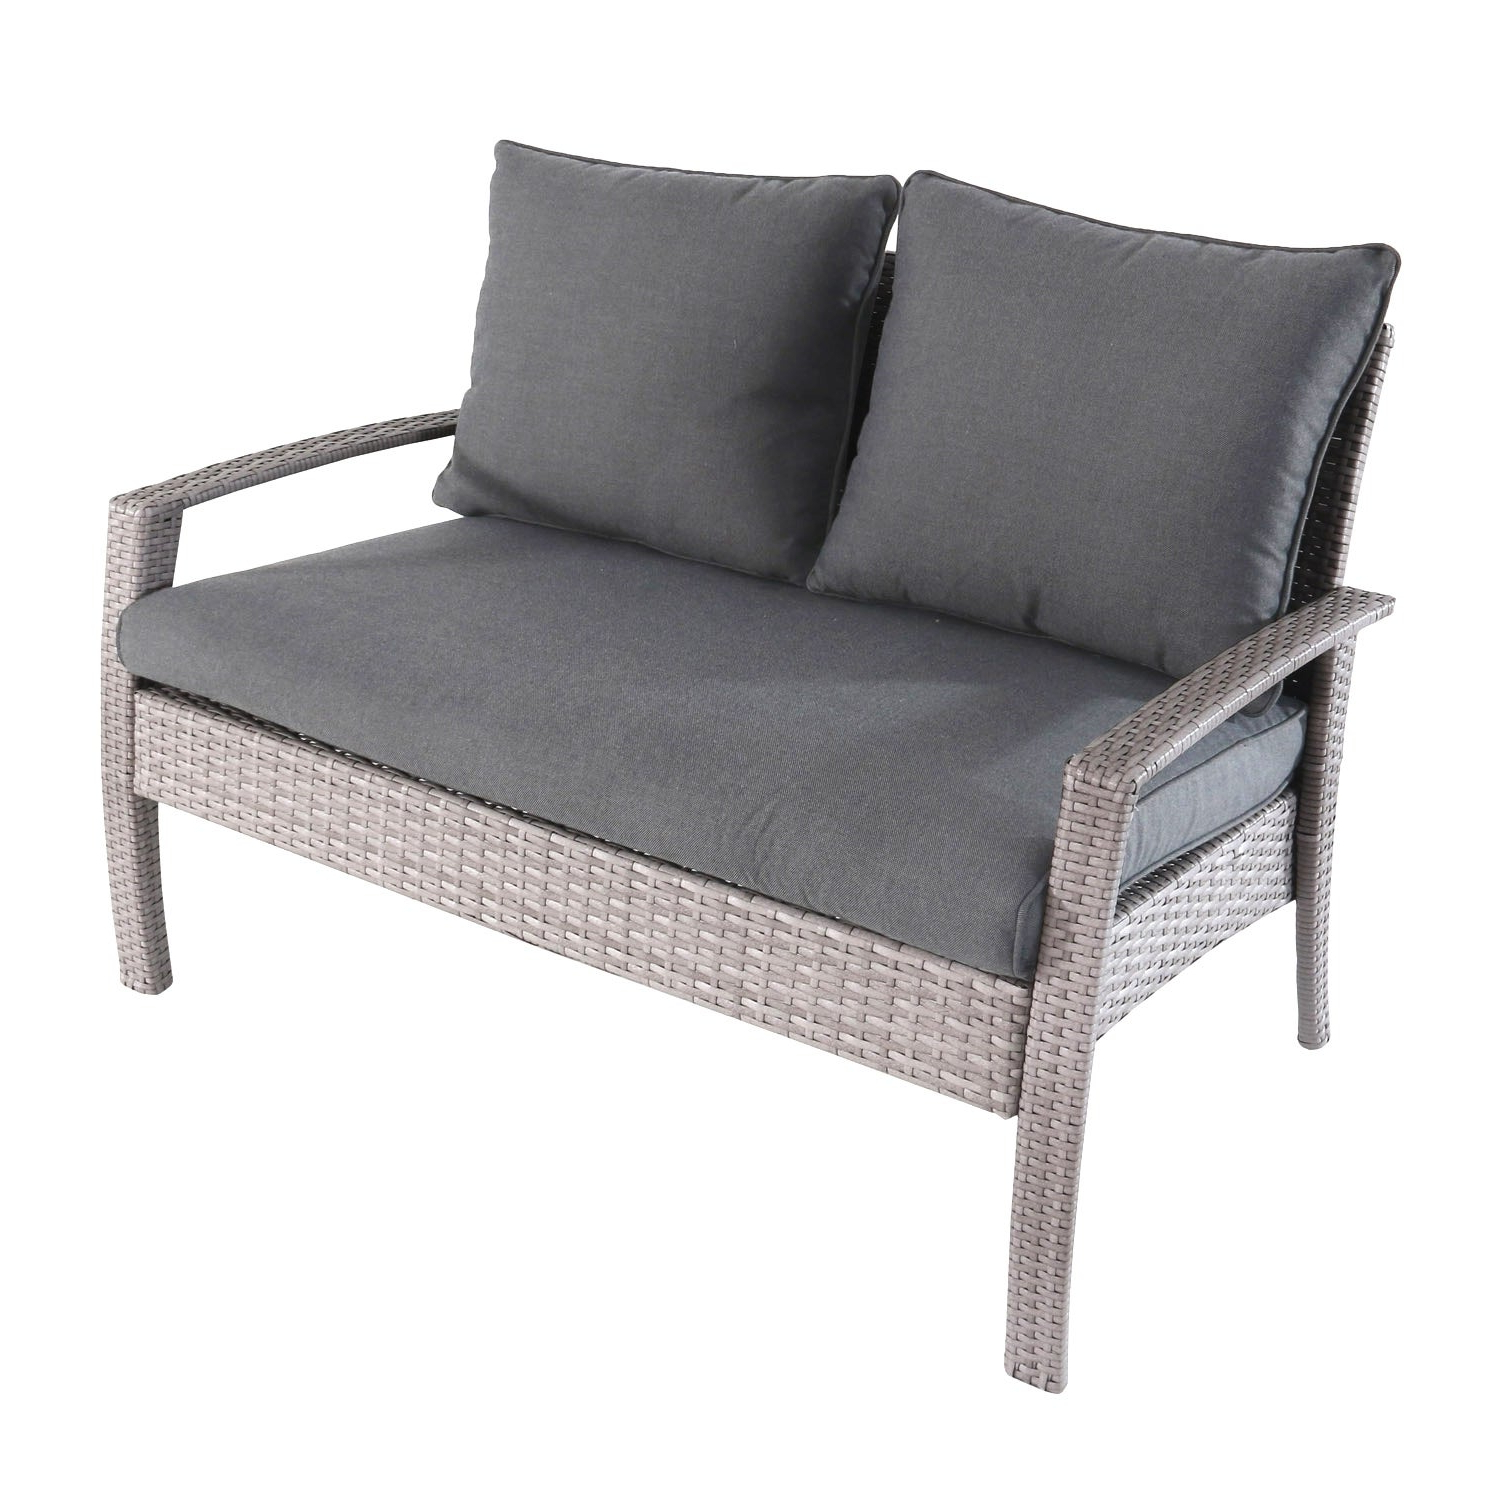 Most Recent Kentwood Resin Wicker Loveseats Within Outdoor Sofas And Loveseats – Home Decor (View 14 of 20)